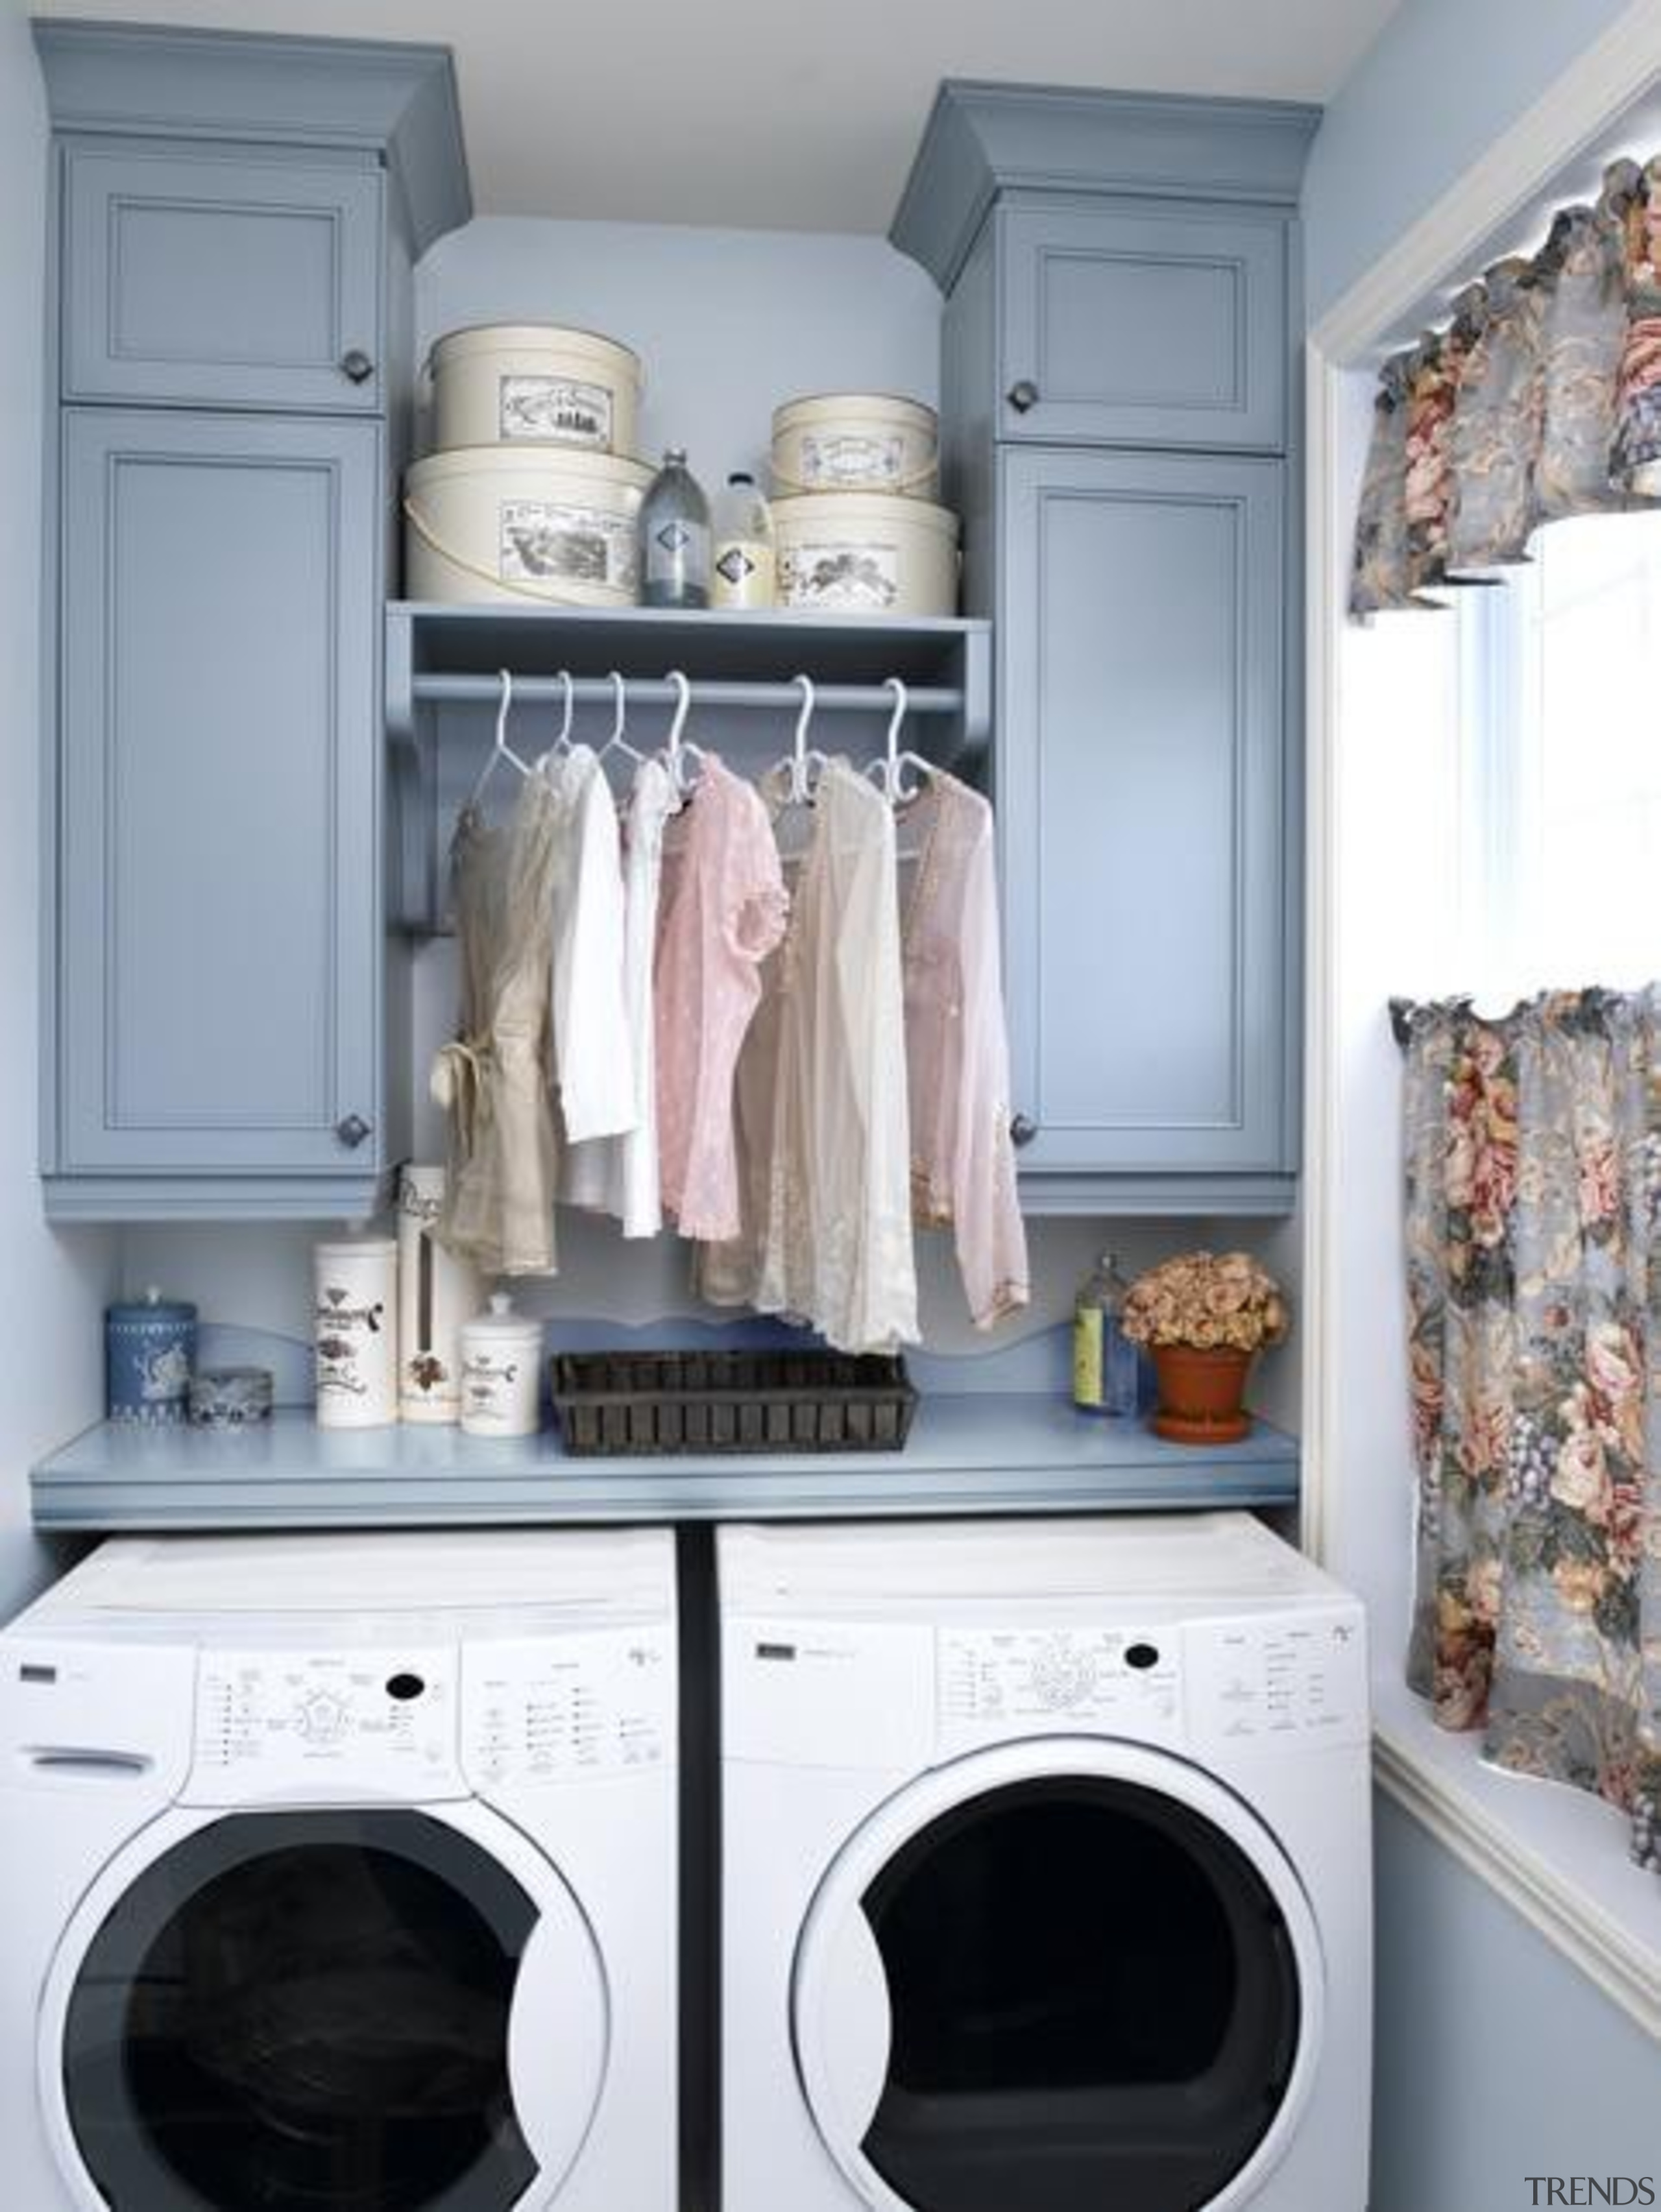 Utilitarian spaces such as laundry rooms and mudrooms closet, clothes dryer, laundry, laundry room, room, shelf, gray